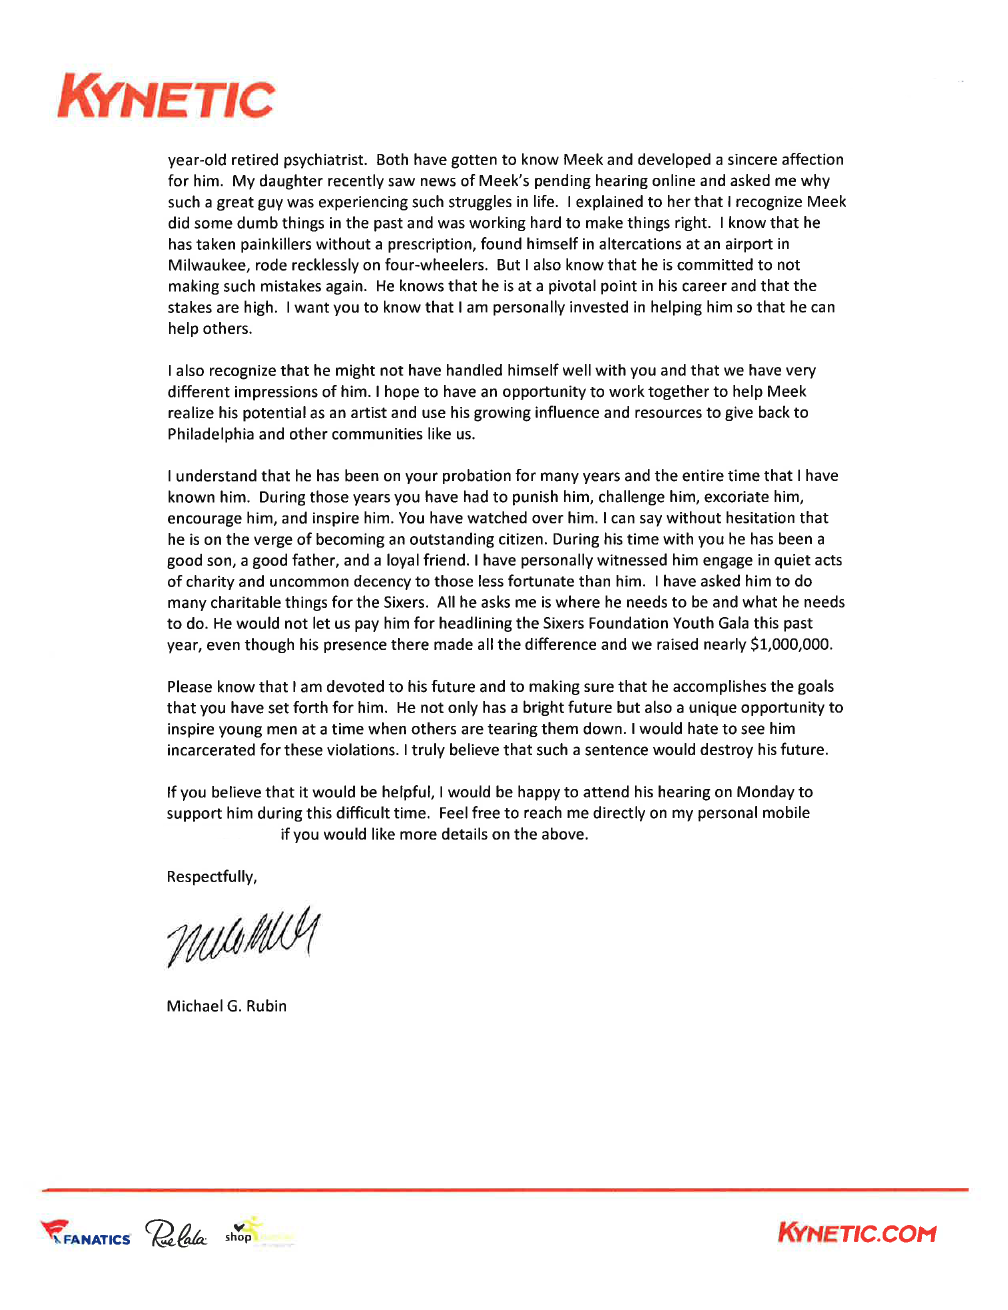 76ers Co-Owner Michael Rubin Writes Letter to Judge on Meek Mill's Behalf